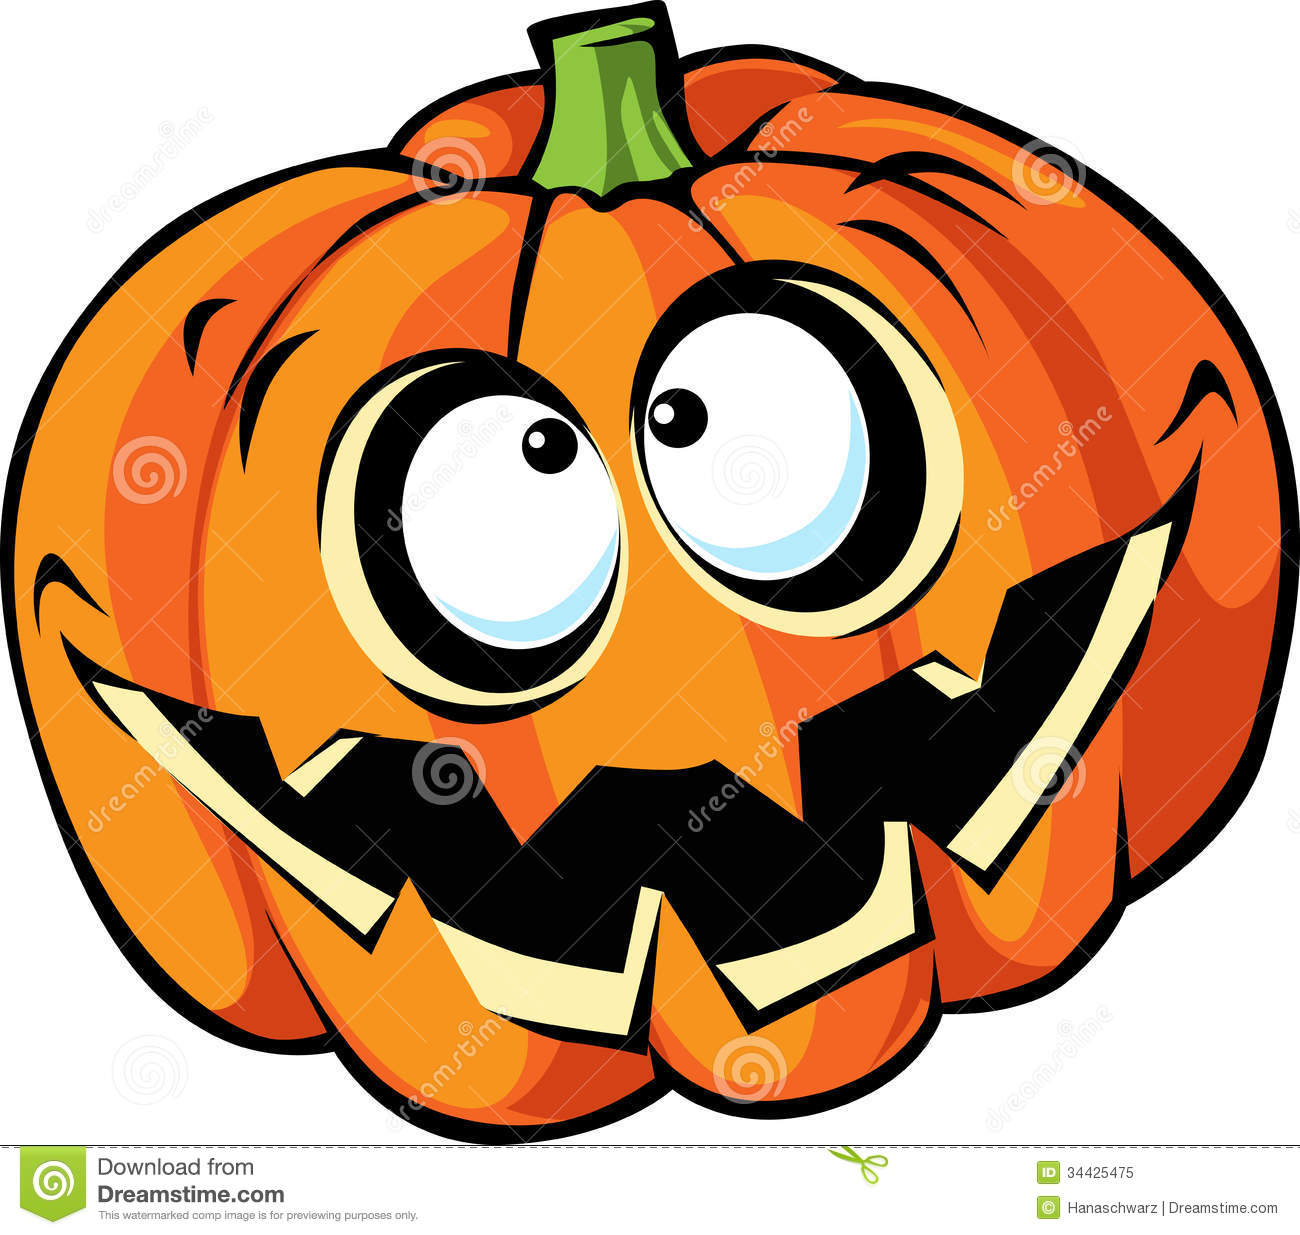 Scary halloween pumpkin cartoon